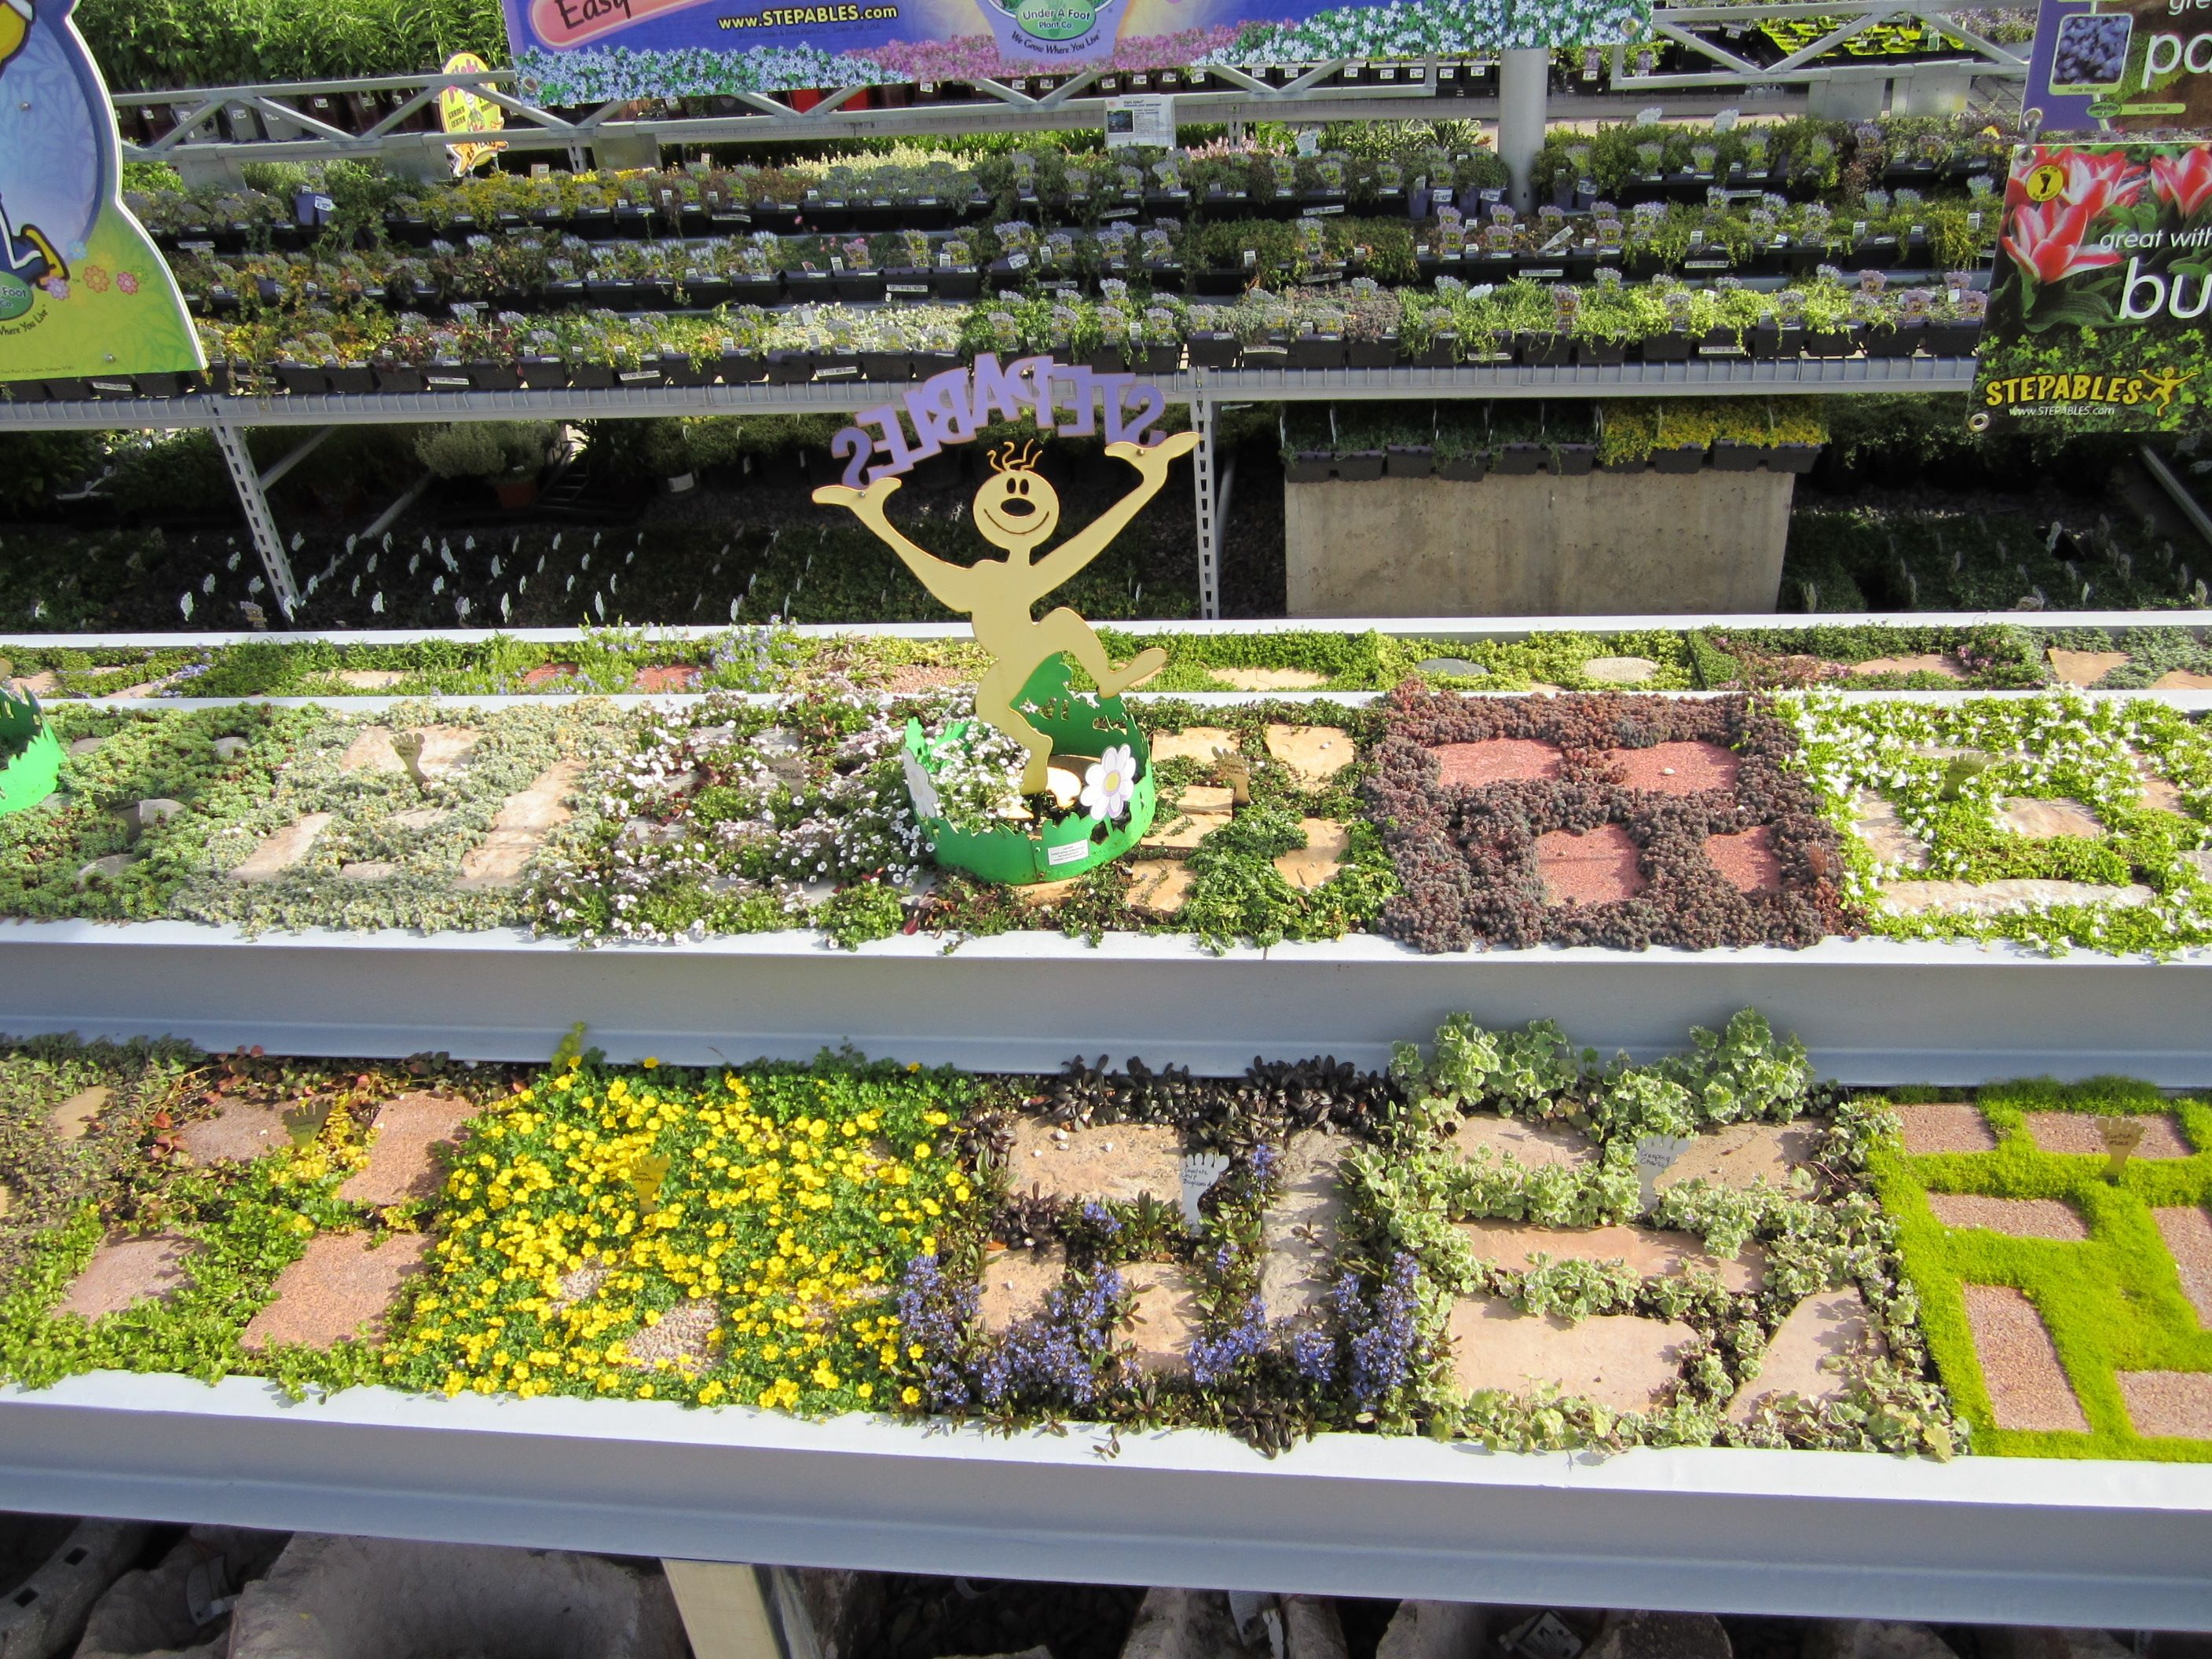 How to plant ground cover between pavers - Our Steppables Display With Plants Such As Irish Moss Scotch Moss Thyme Sedum